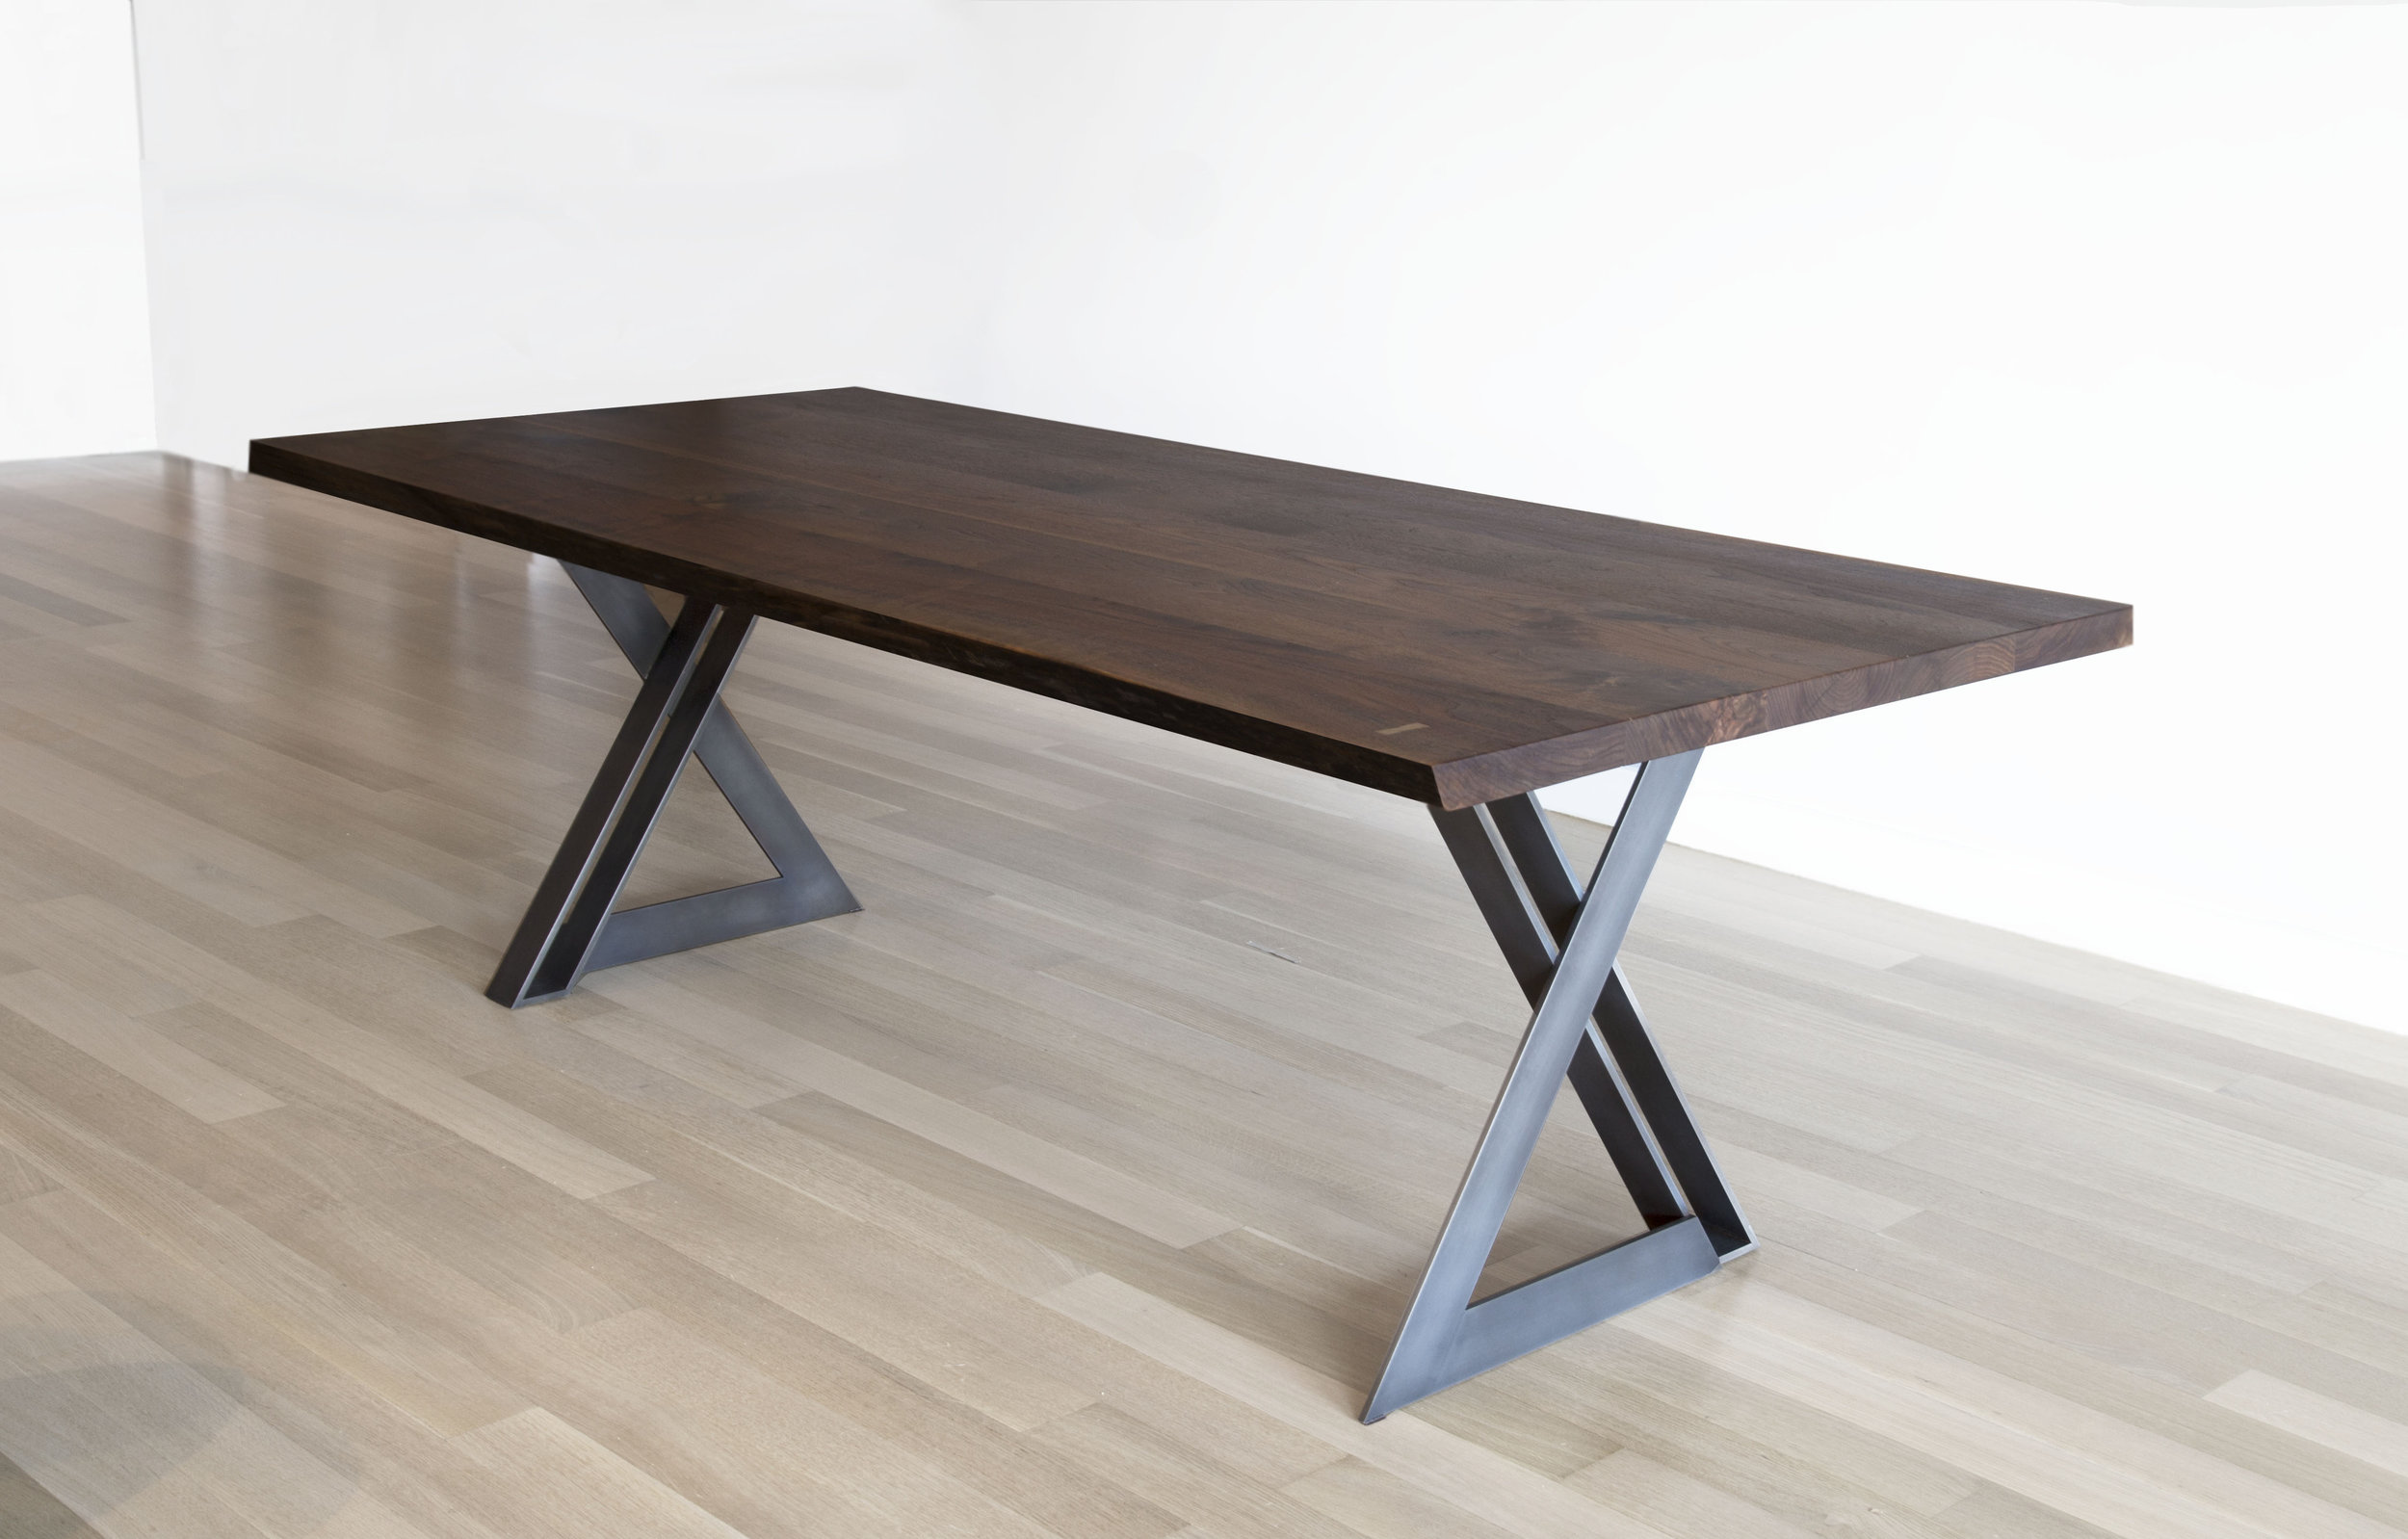 founders-live-edge-walnut-dining-table-x-base-5.jpg